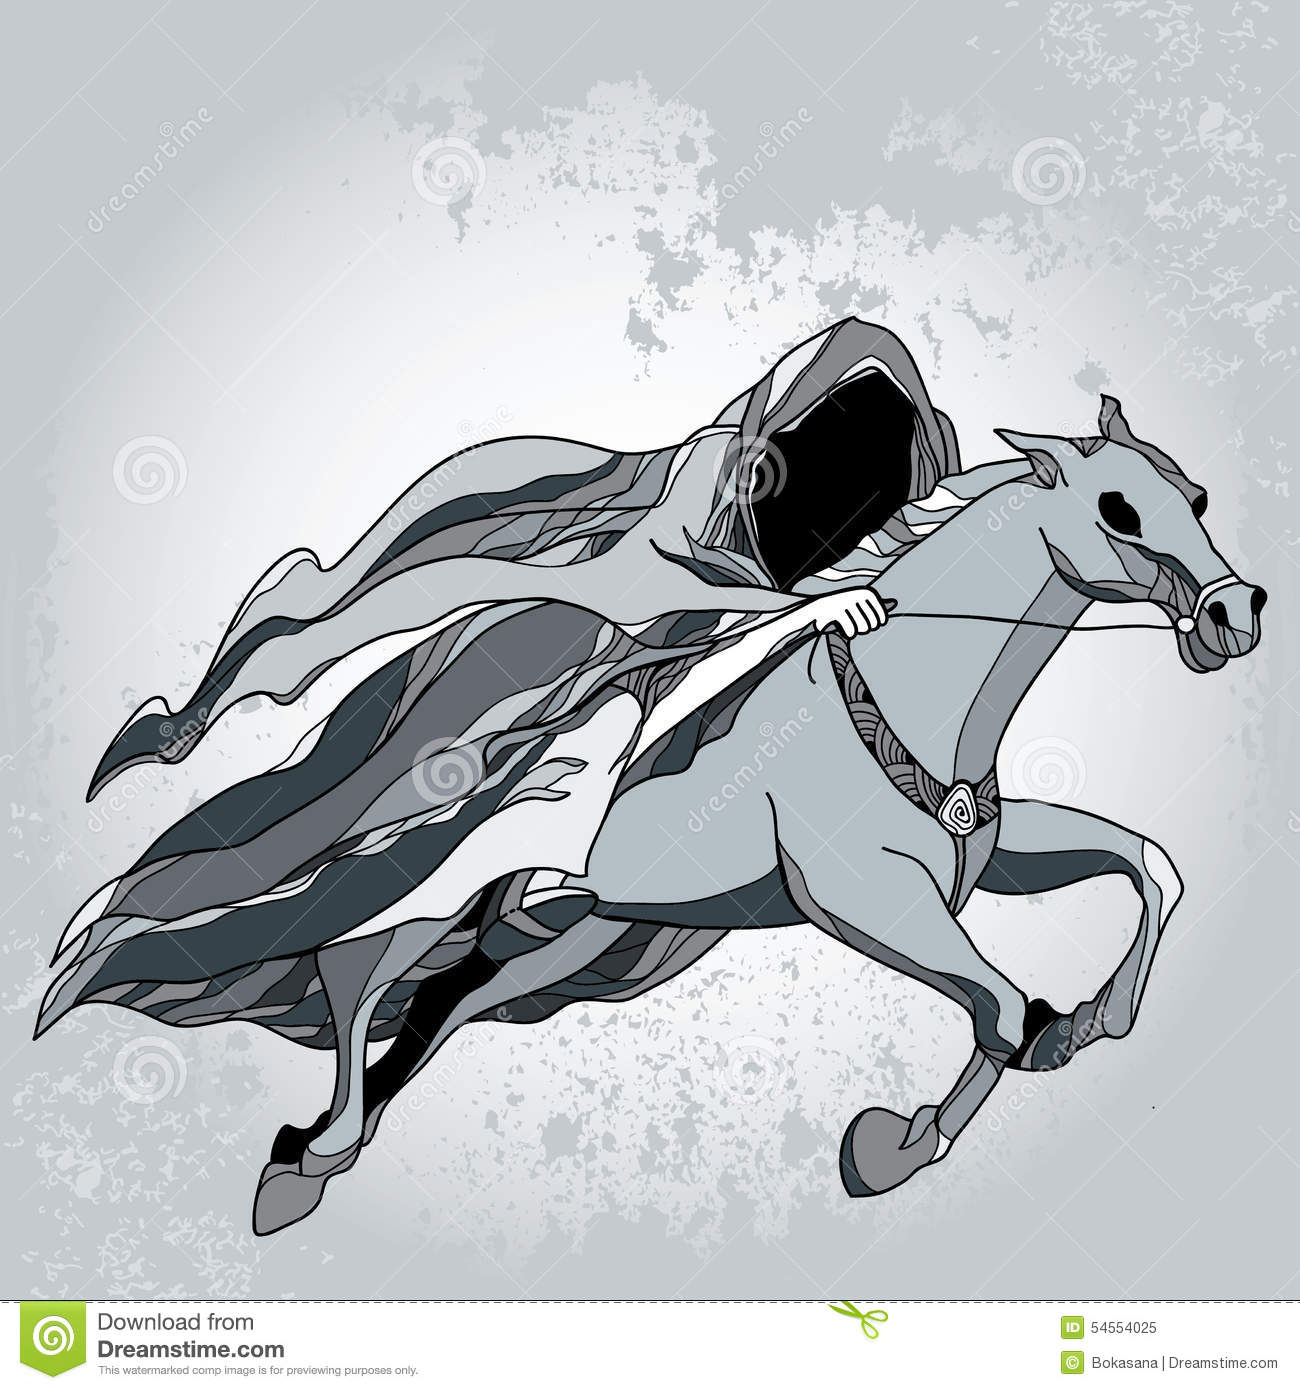 Nazgul clipart #1, Download drawings